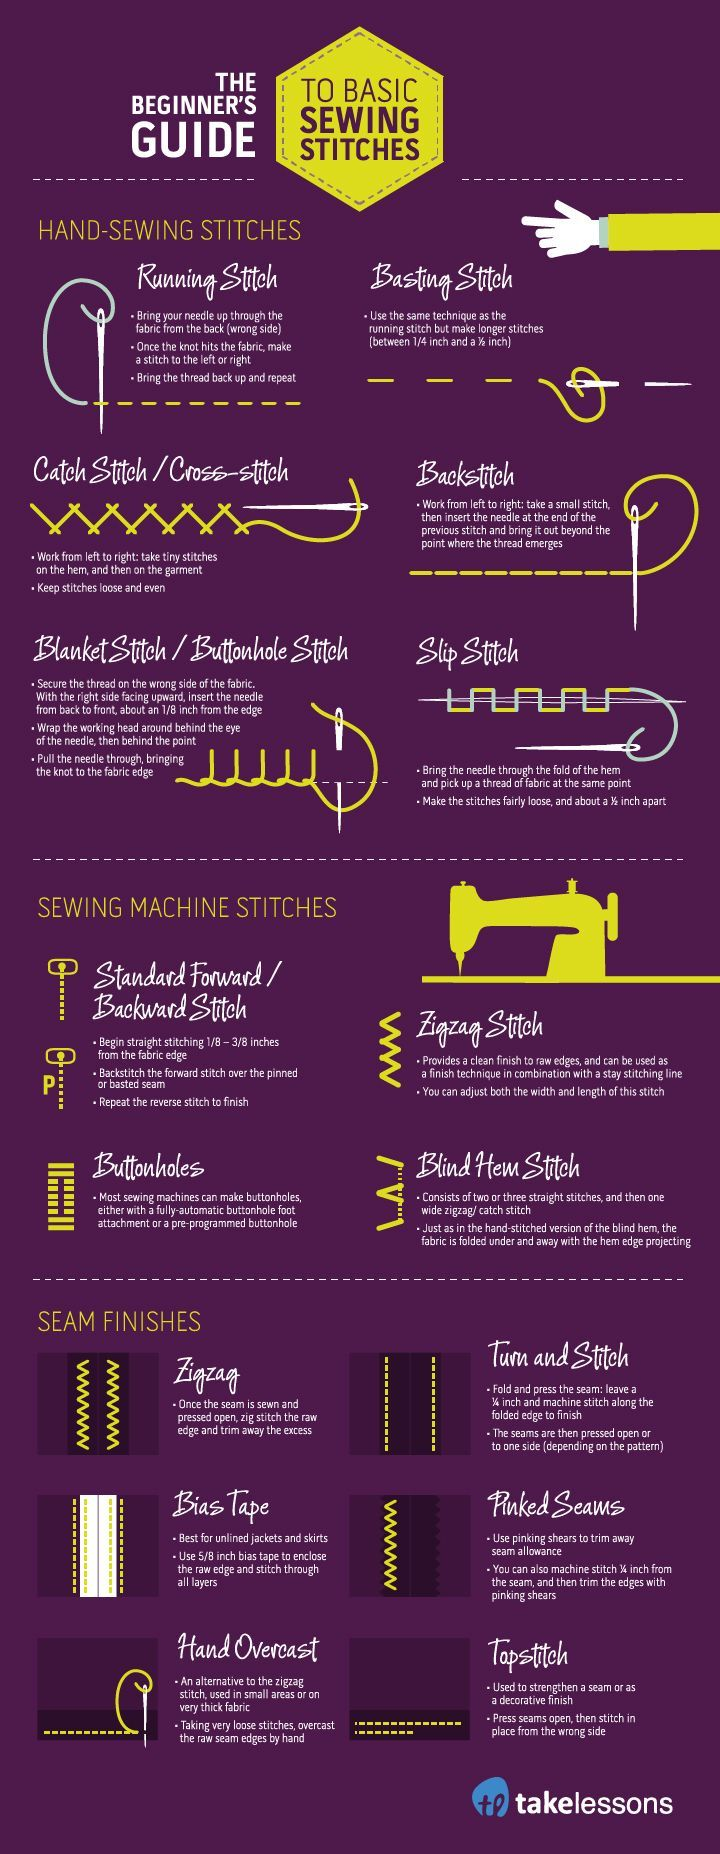 SIY (Sew-it-yourself): Everything You Need to Know about Basic Sewing Stitches - Tipsographic